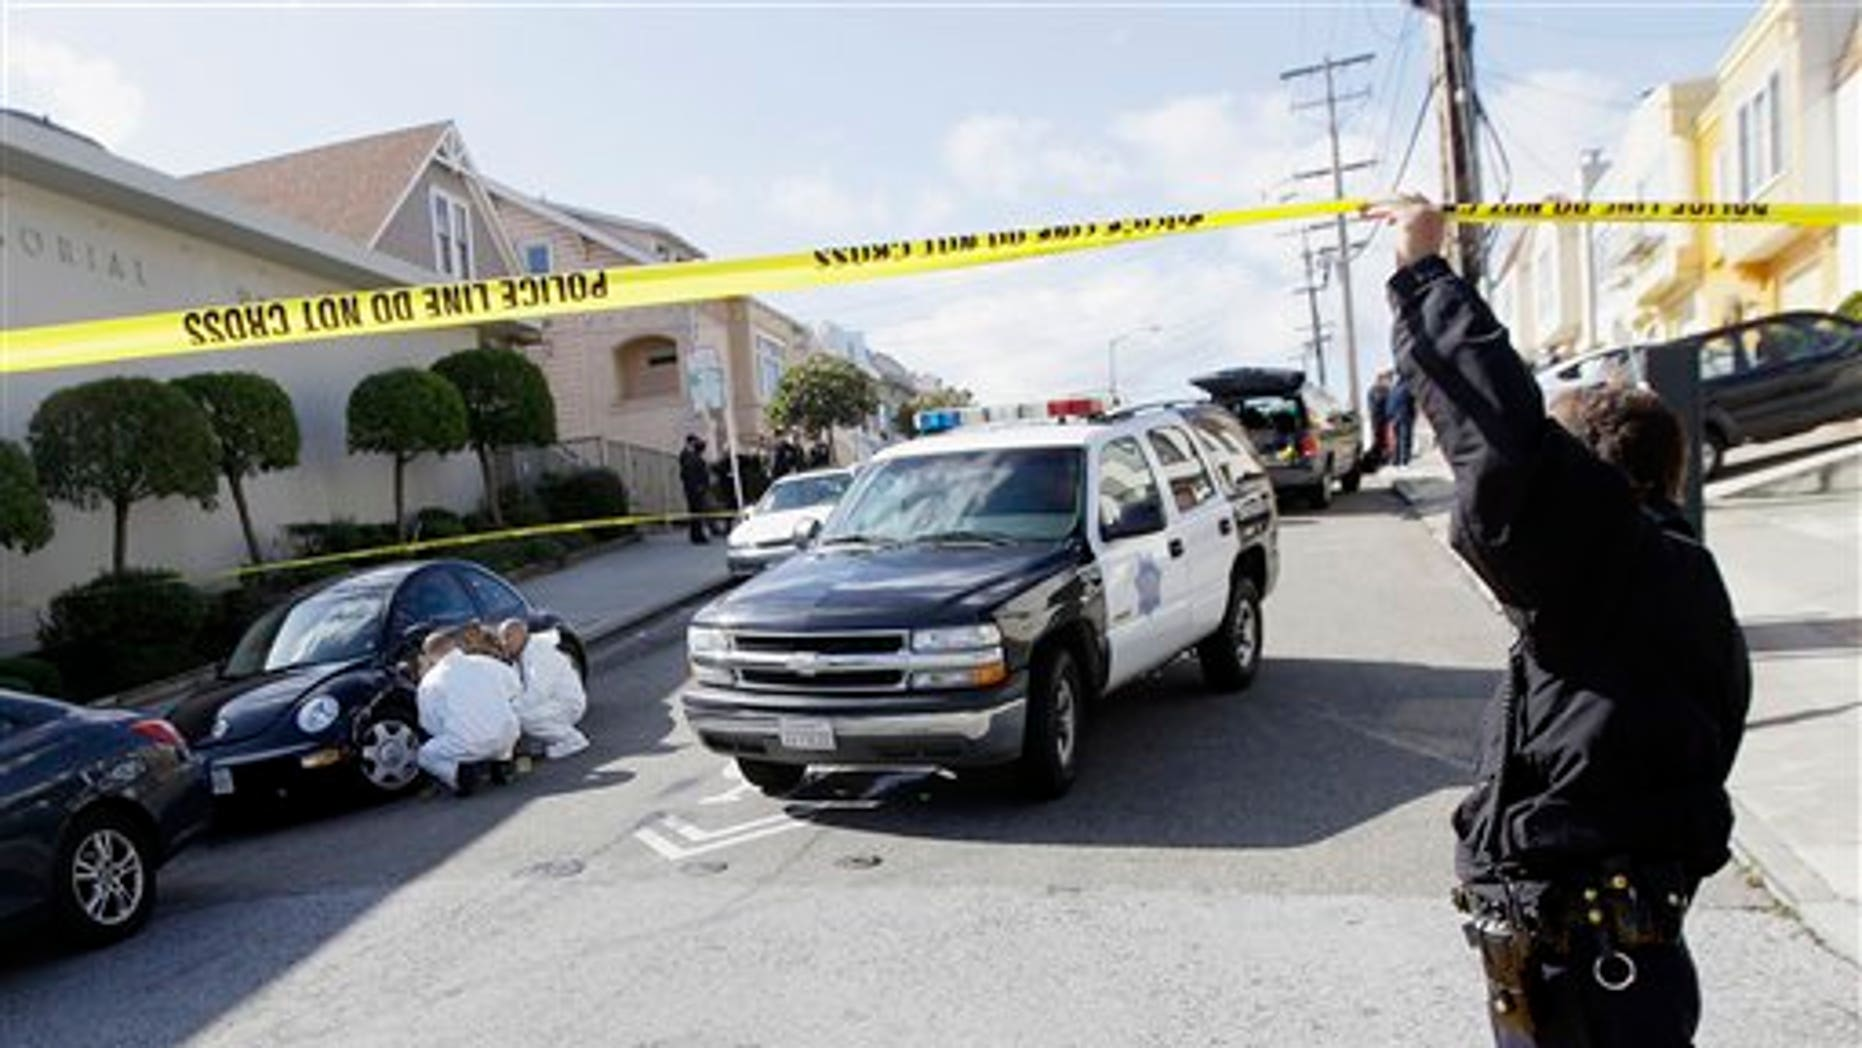 March 23: San Francisco Police officers inspect outside of a home on Howth Street in San Francisco.